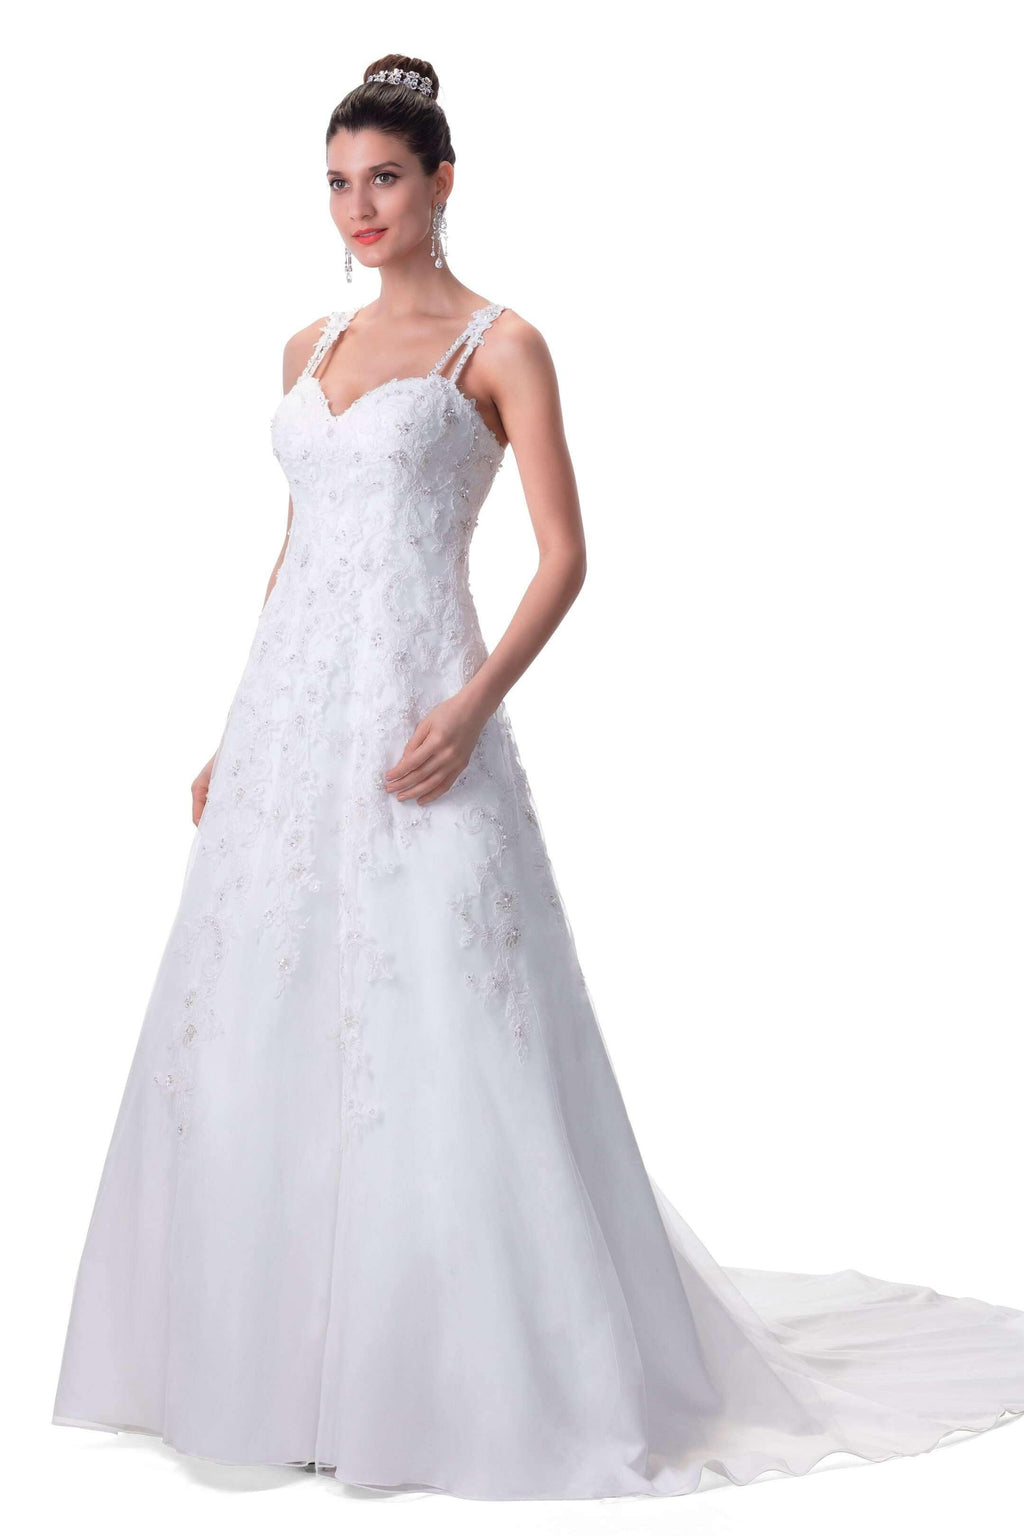 VENUS BRIDAL - Saffron - Adore Bridal and Occasion Wear